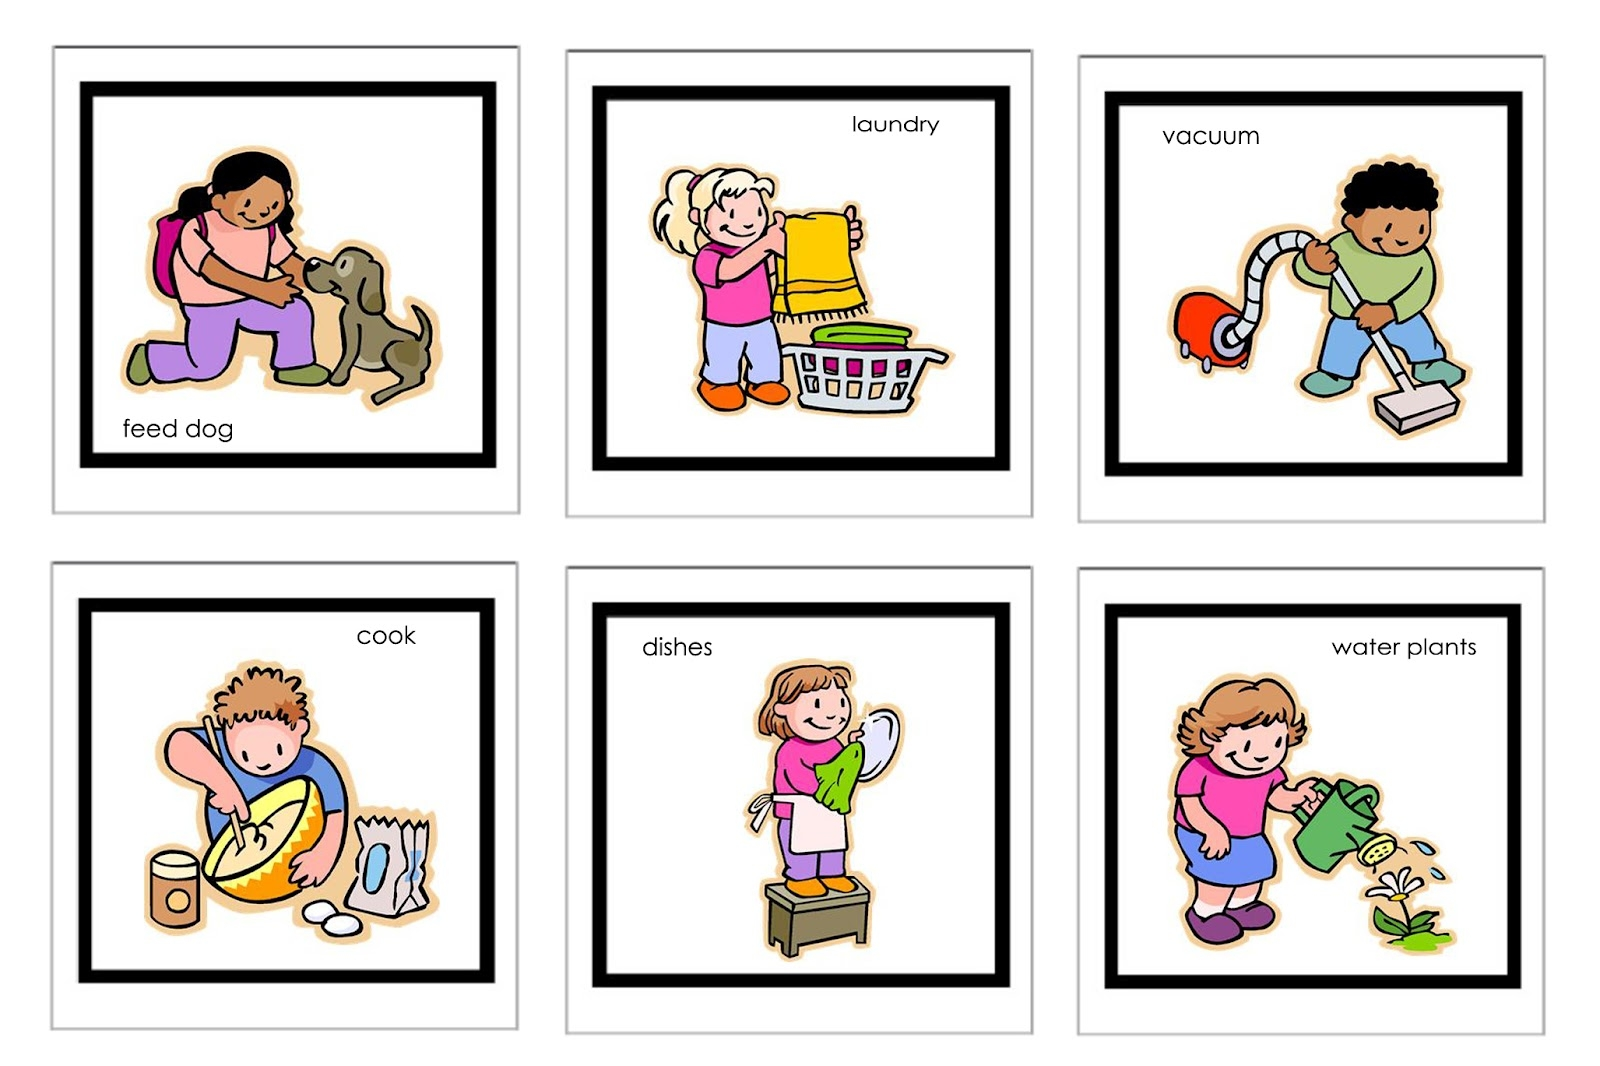 Toddler doing chores clipart black and white picture freeuse Children doing household chores clipart - WikiClipArt picture freeuse